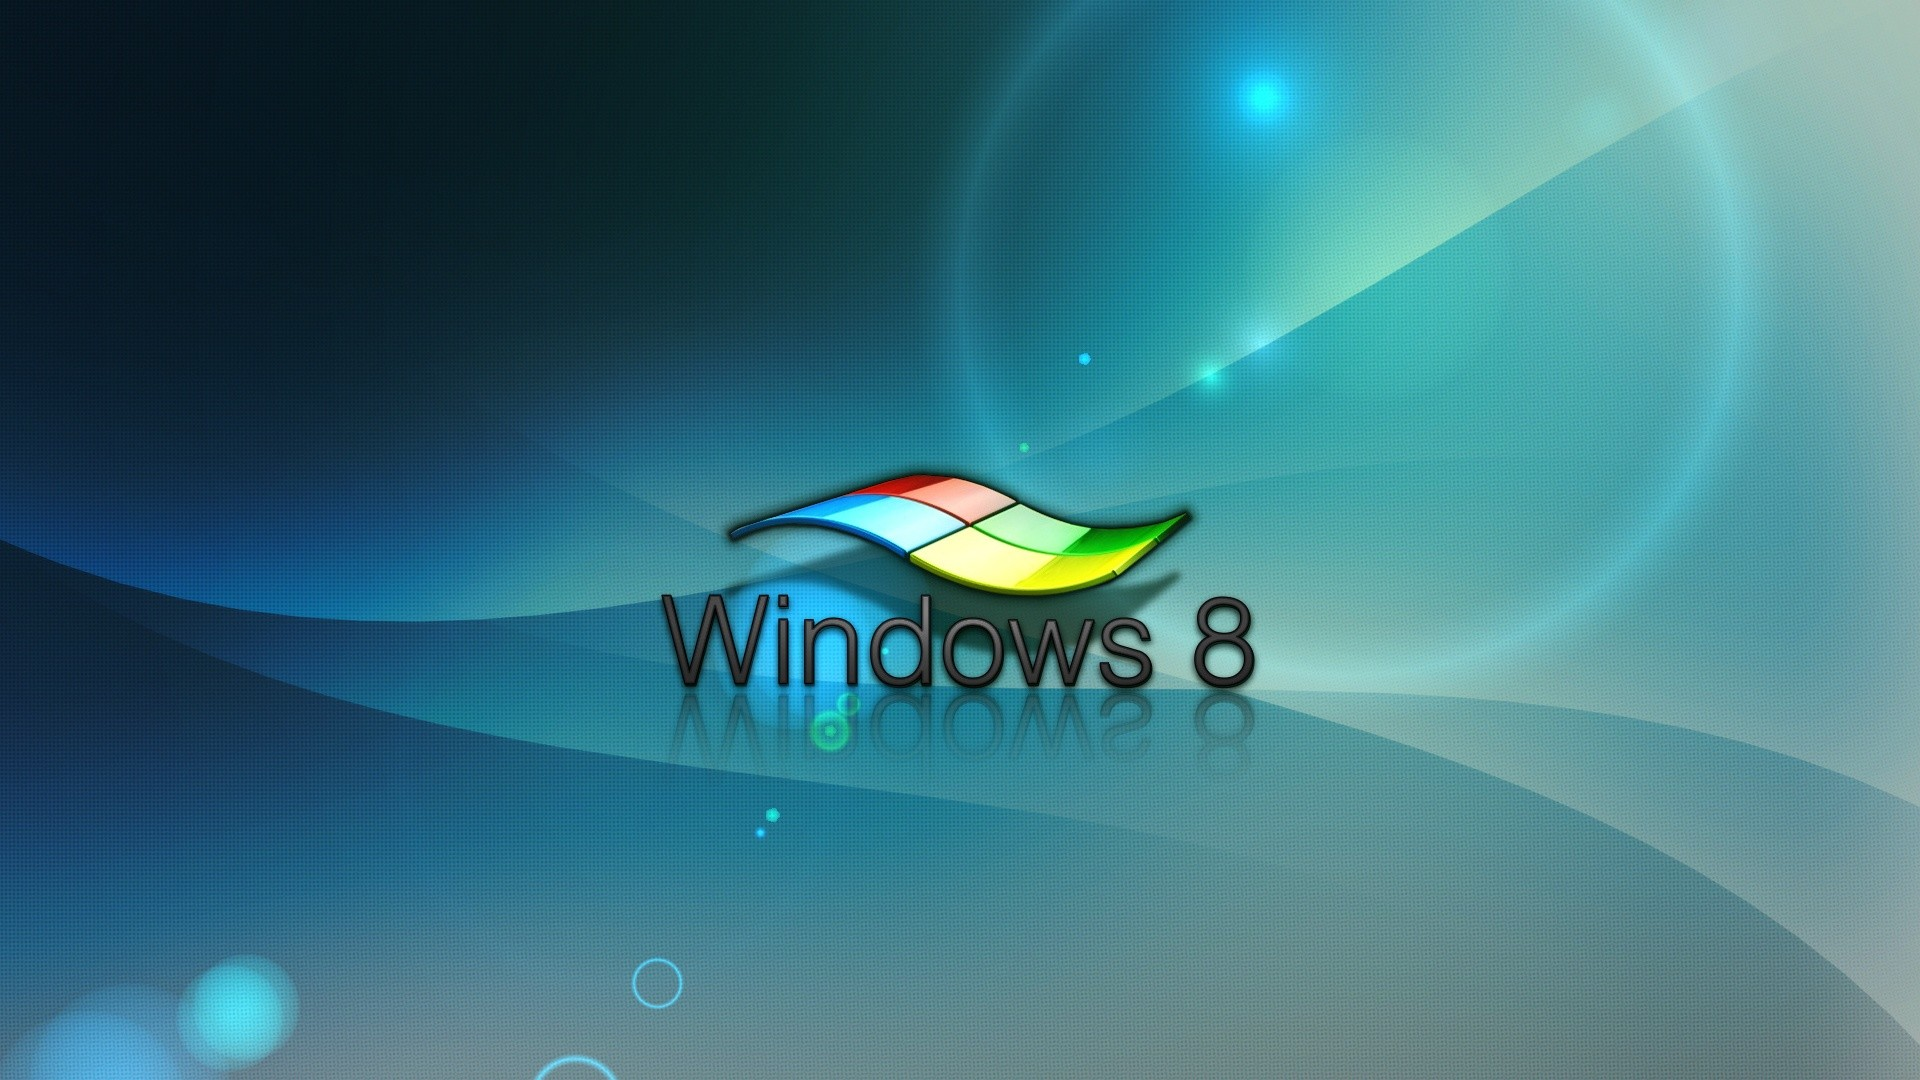 of widescreen HD wallpapers for Windows 8 found around the 'net .